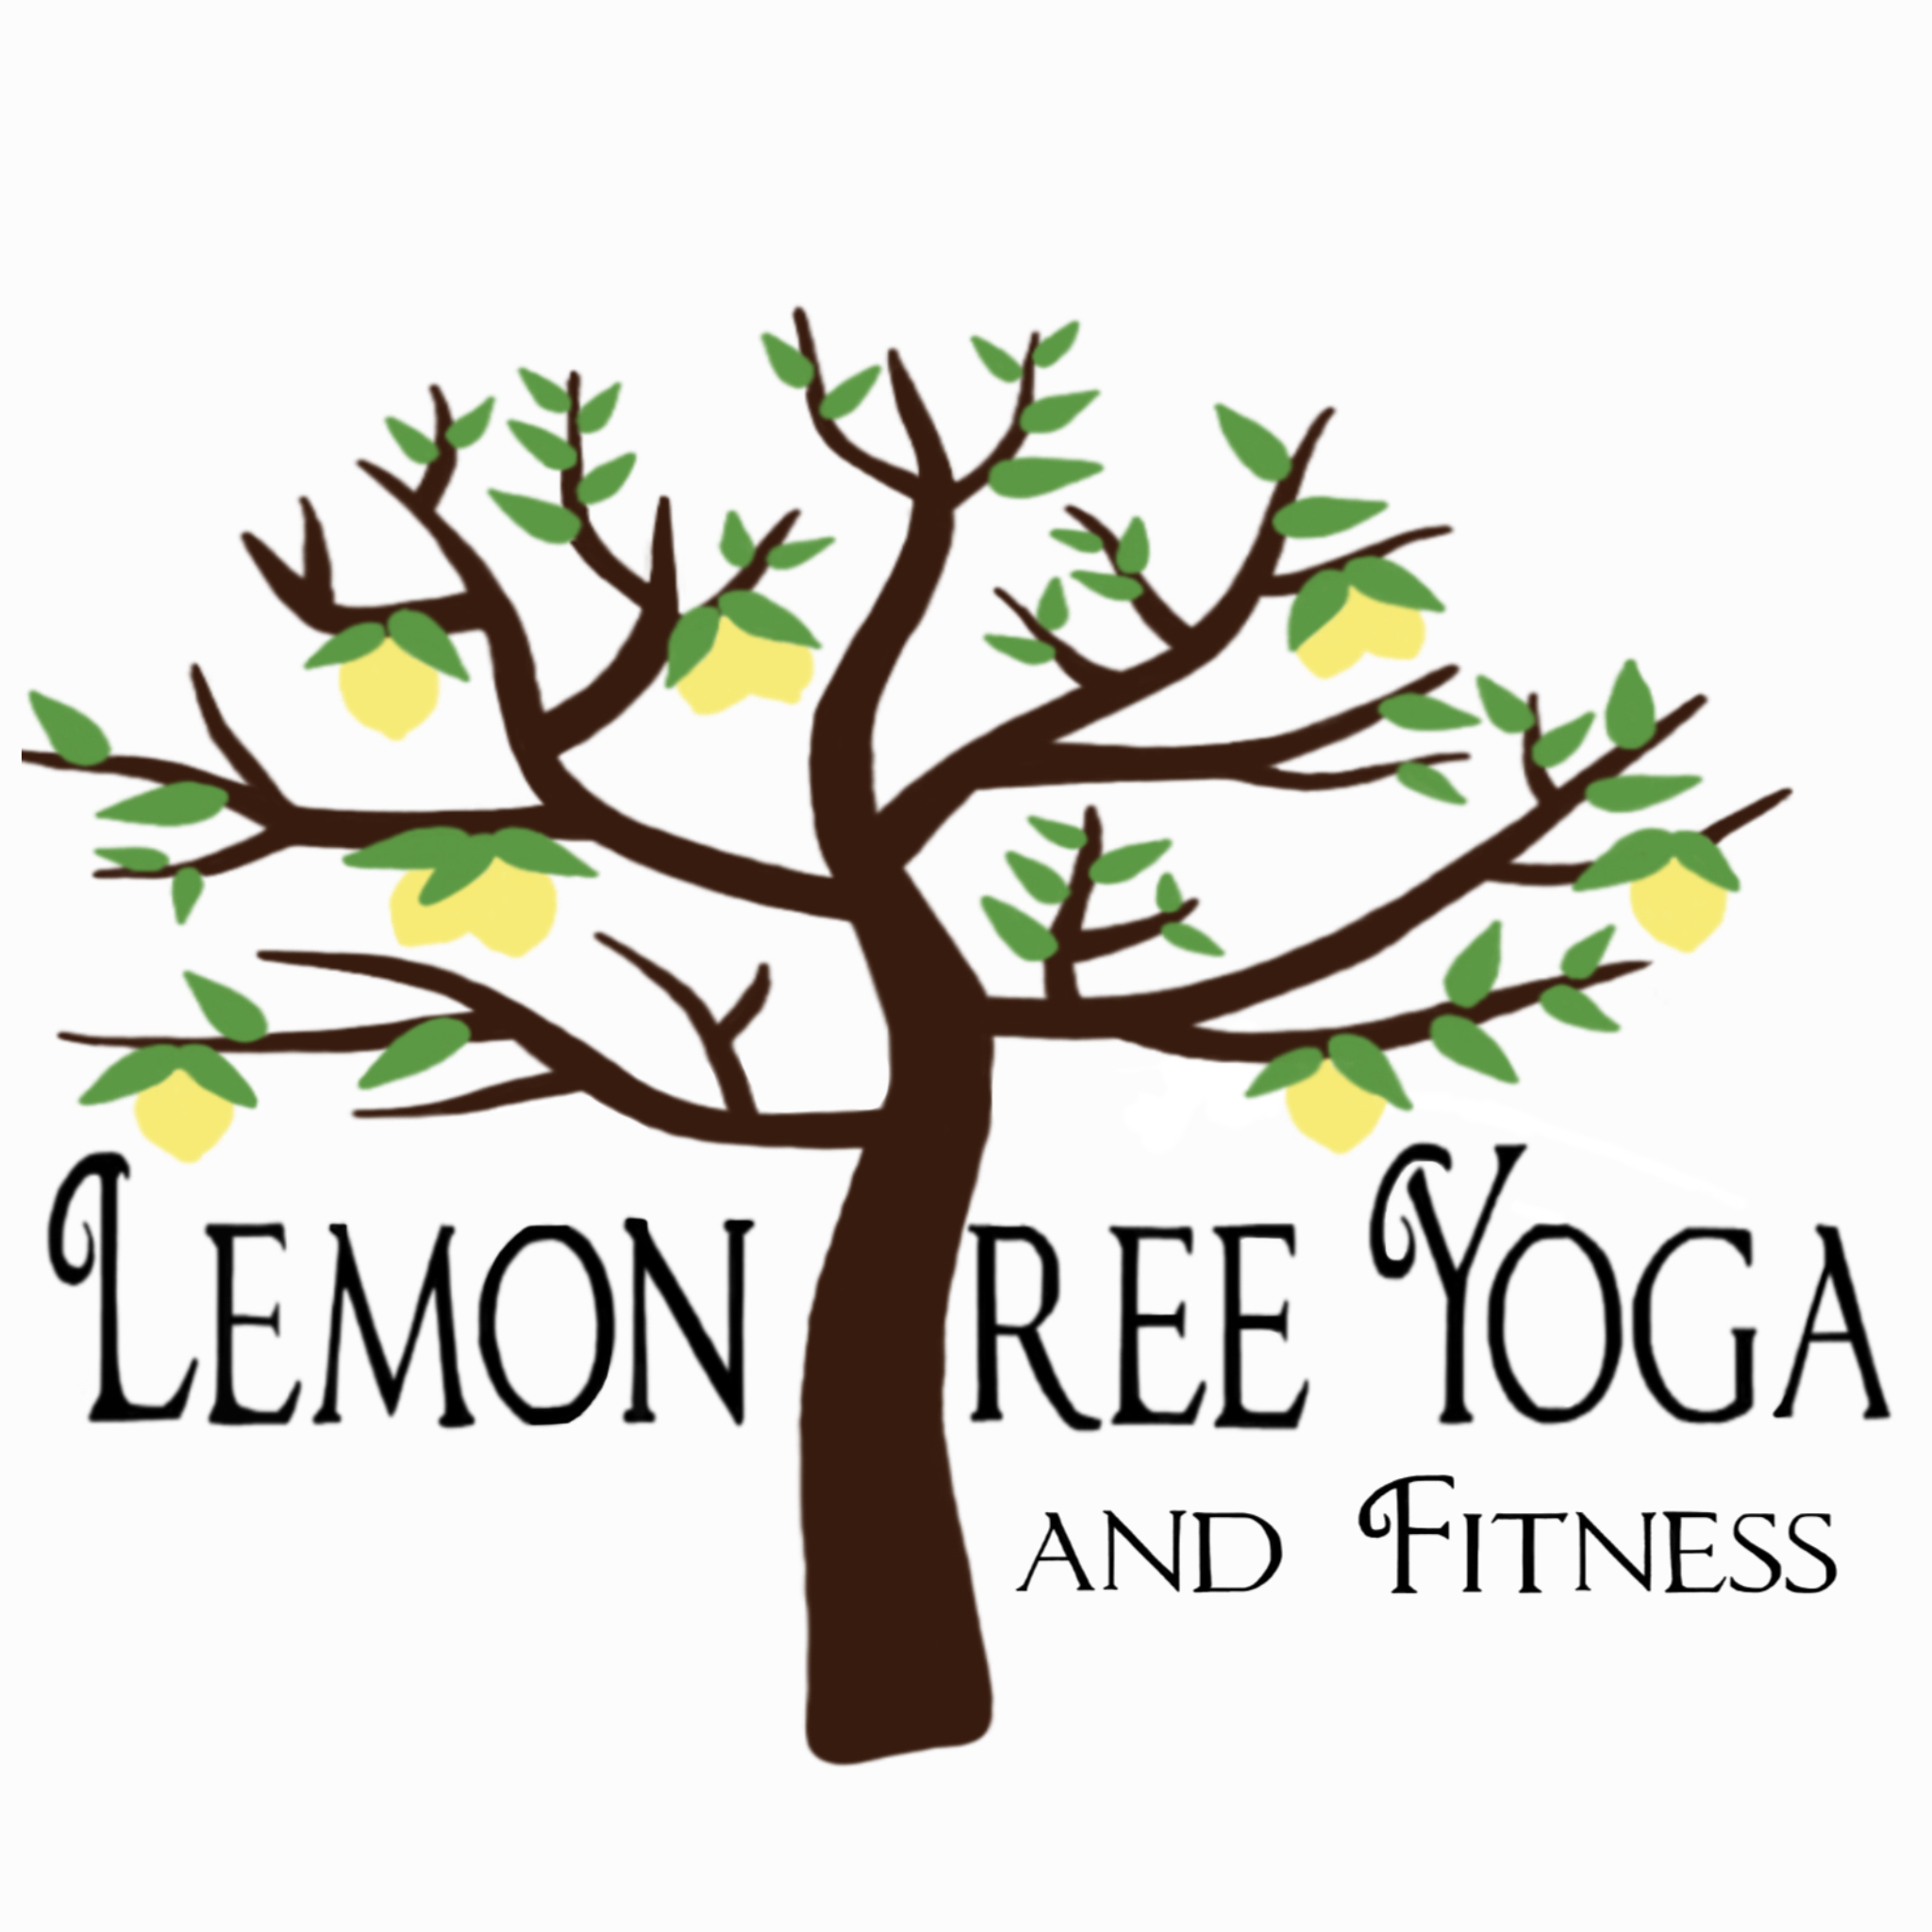 Lemon Tree Yoga and Fitness